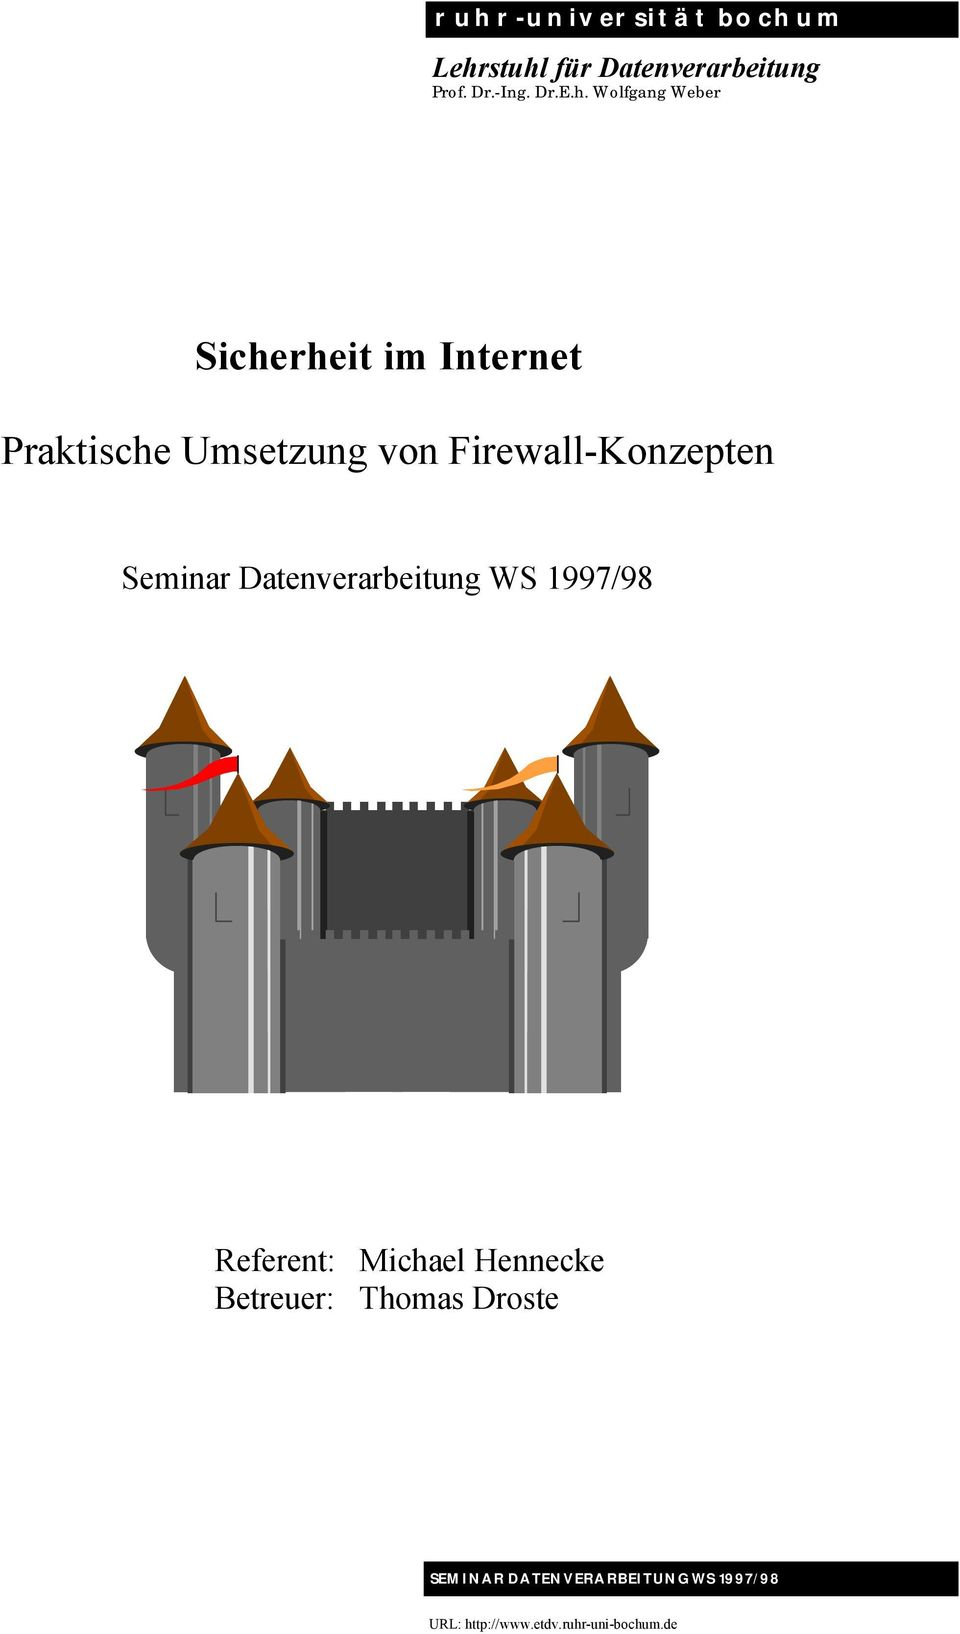 Seminar Datenverarbeitung WS 1997/98 Referent: Michael Hennecke Betreuer: Thomas